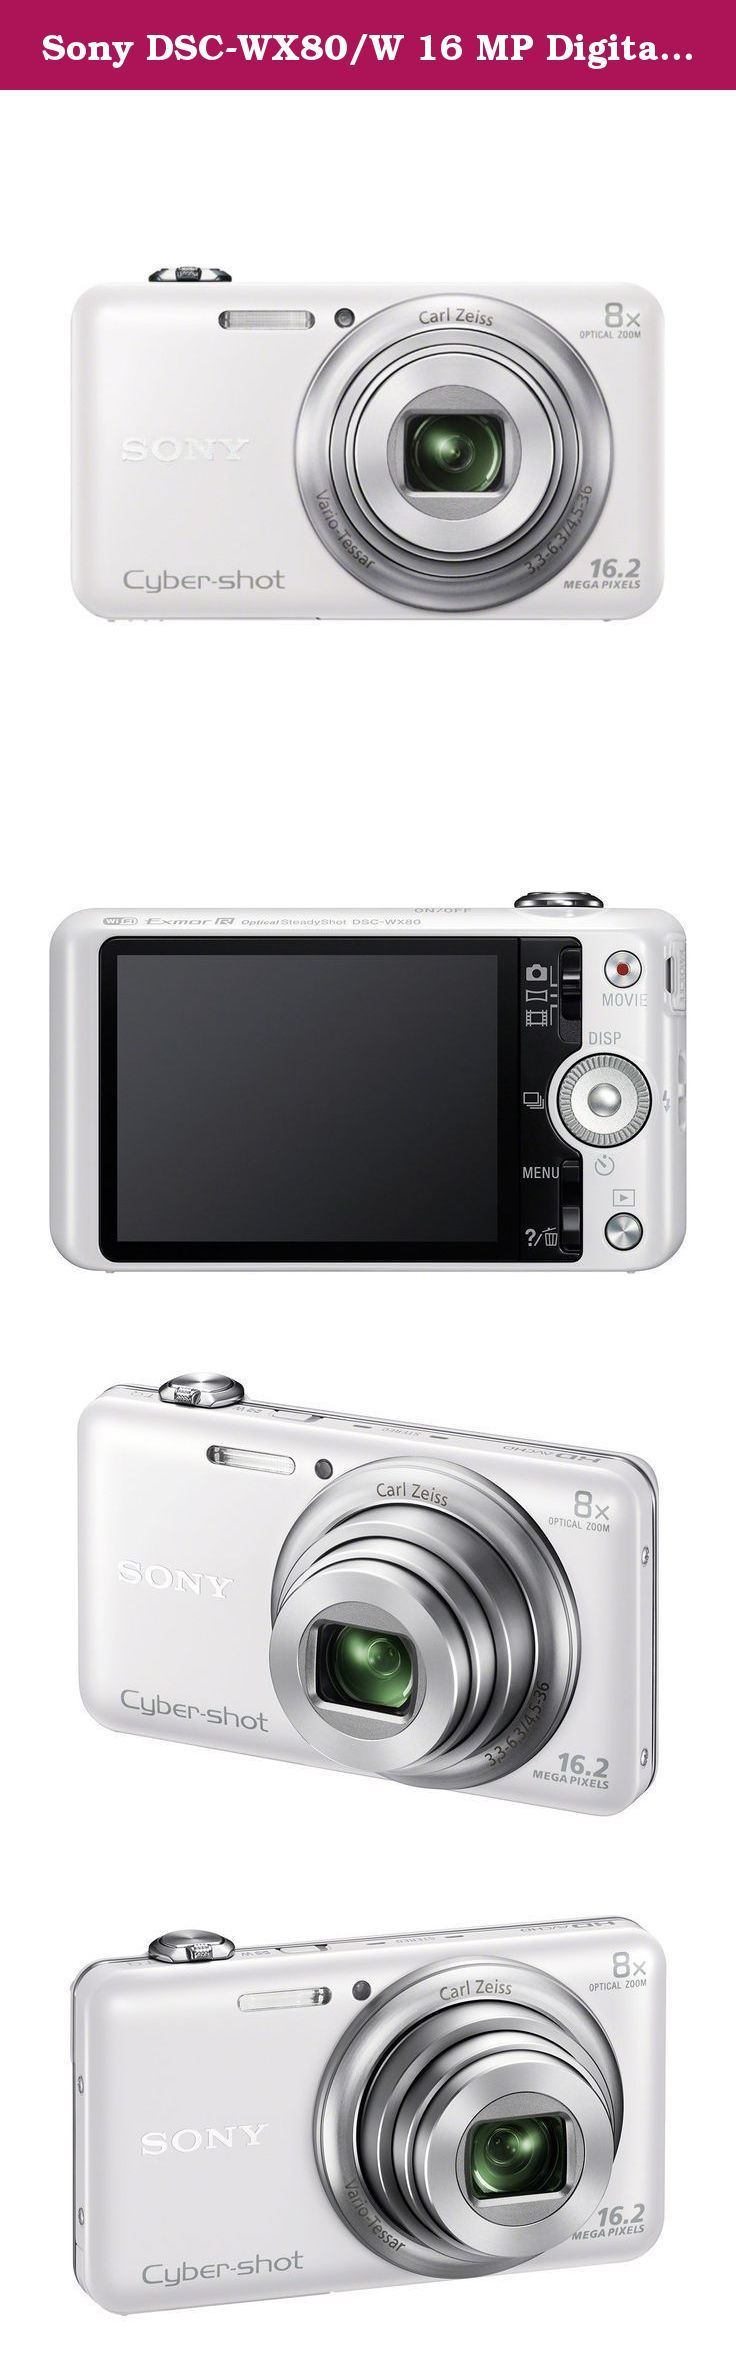 Sony DSC-WX80/W 16 MP Digital Camera with 2.7-Inch LCD (White). Shoot stunning close-ups even in low light with the 16.2MP pocket camera that makes everything easier thanks to 8x optical zoom and built-in Wi-Fi®. Whether you're taking pics, shooting full HD video or sharing them with family and friends, everything happens with the simple push of a button.